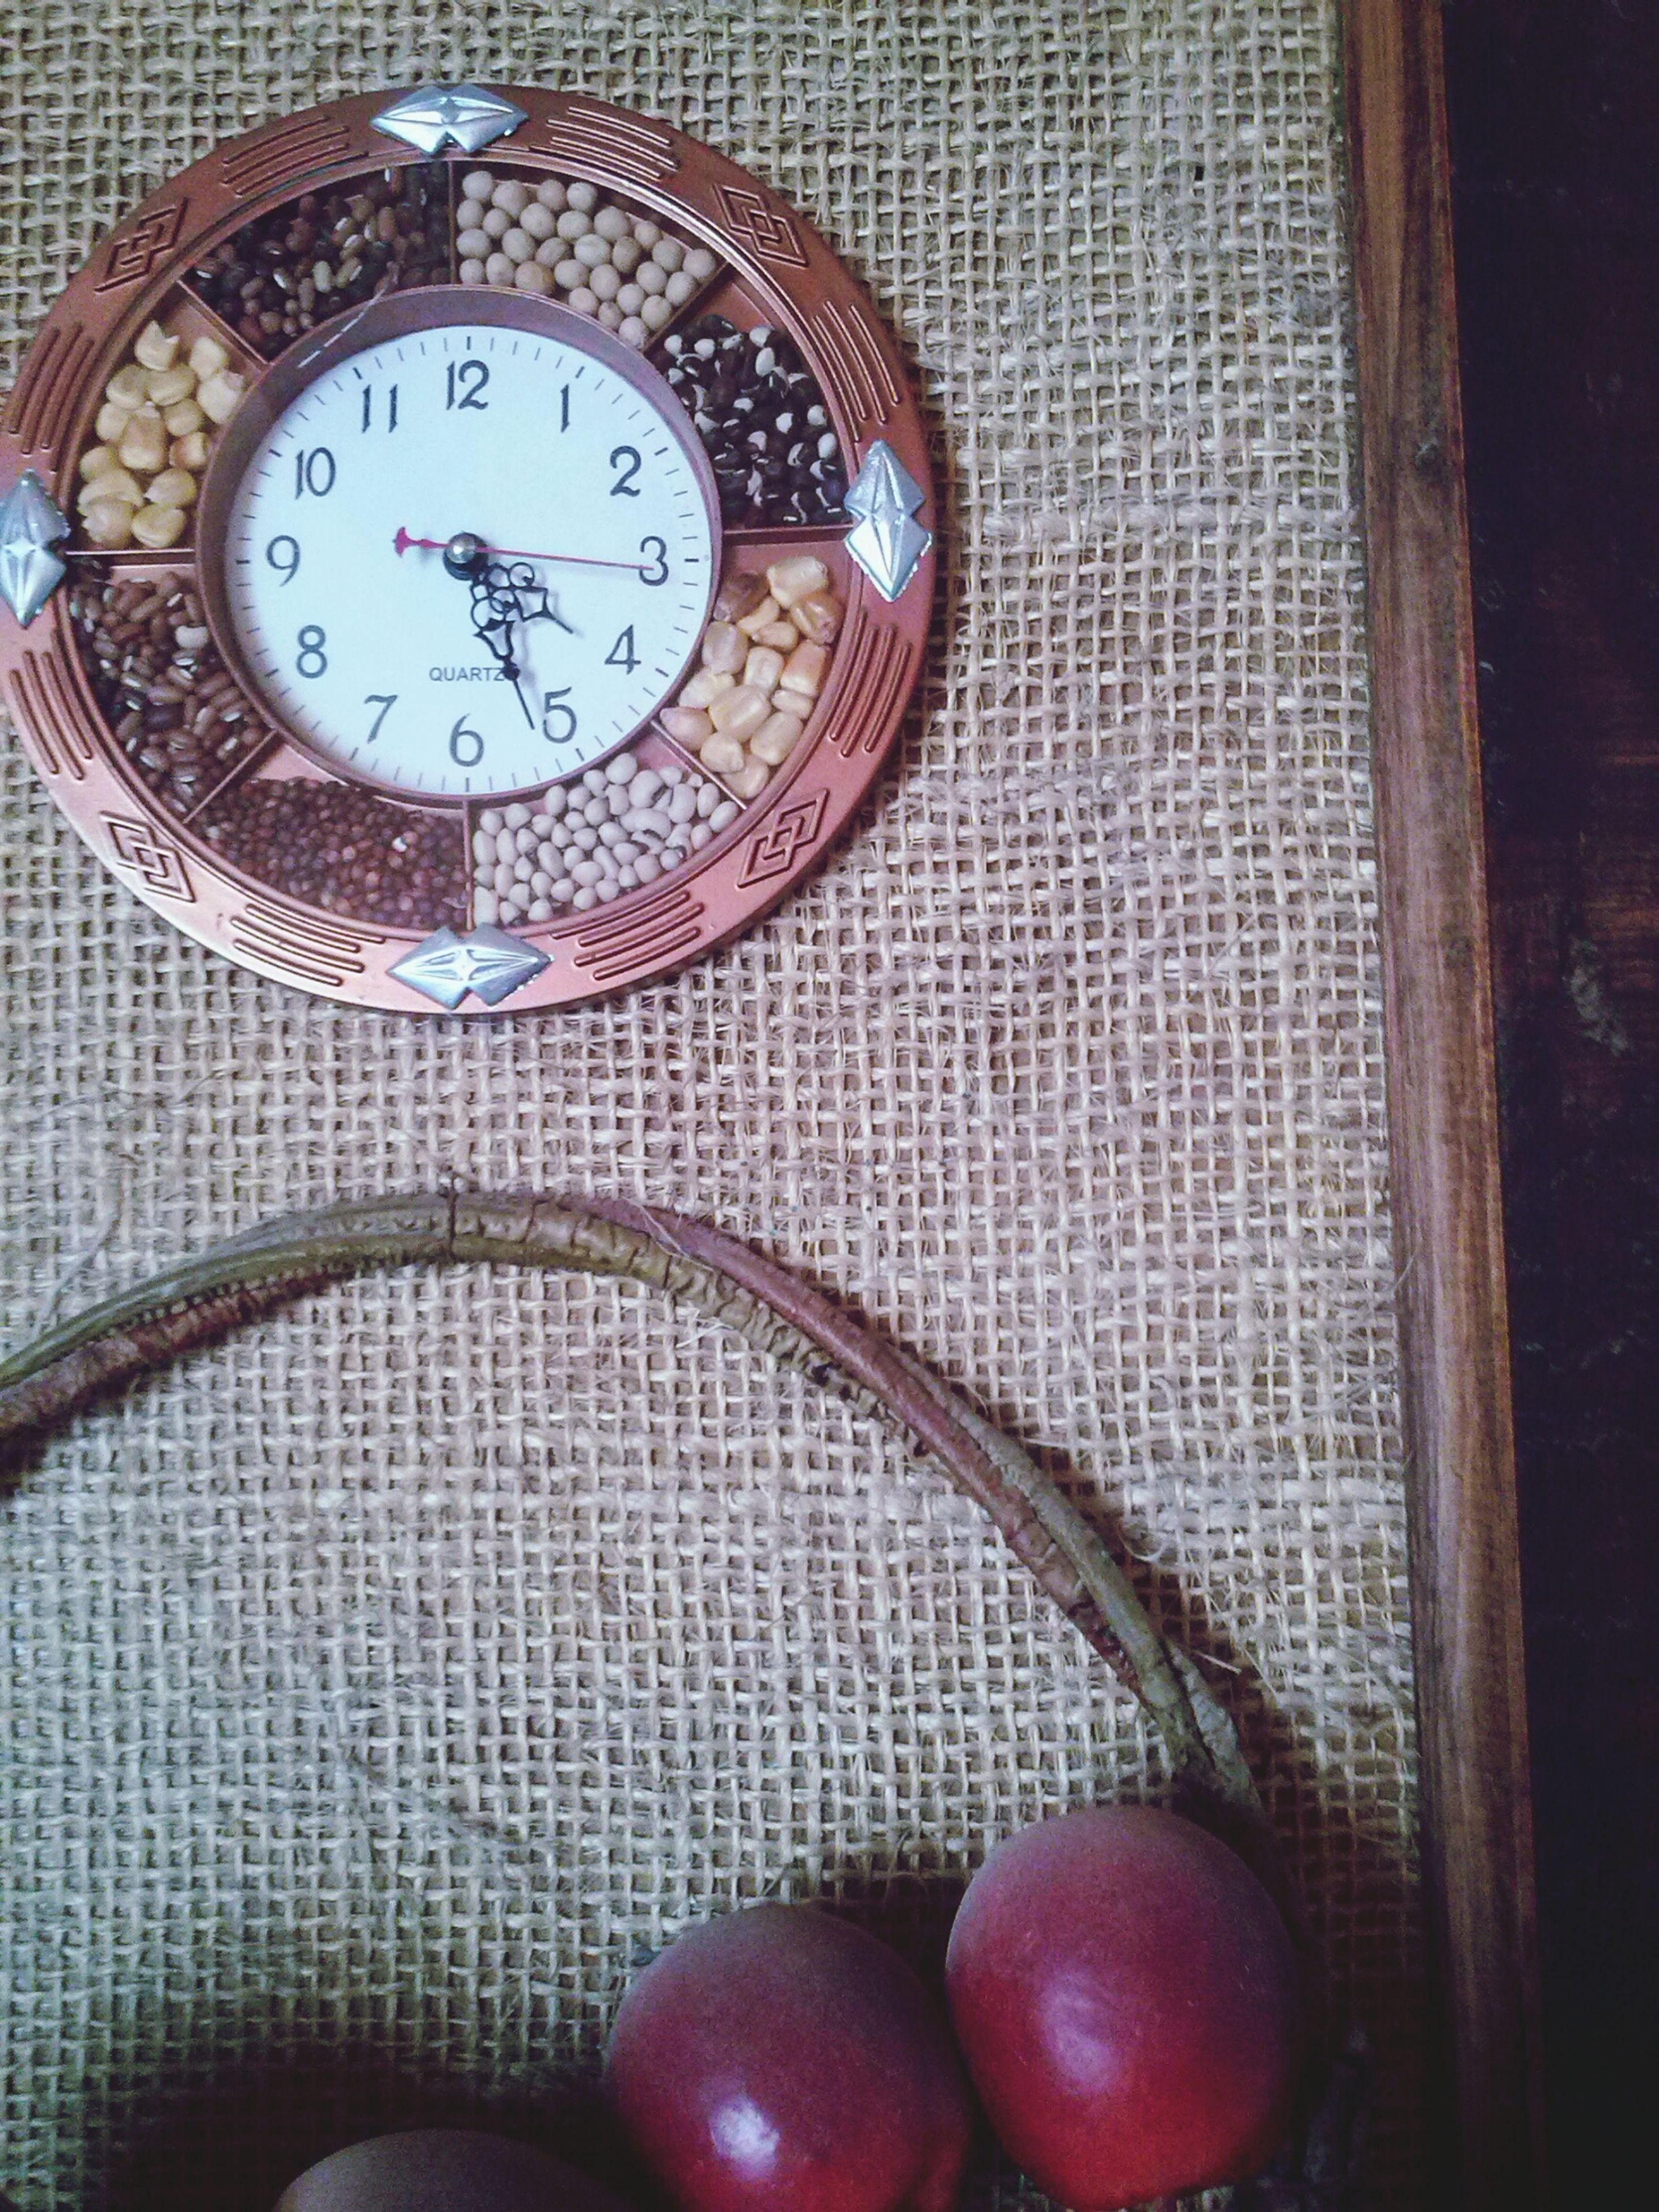 indoors, time, clock, number, communication, text, close-up, old-fashioned, circle, wall - building feature, still life, no people, accuracy, western script, clock face, metal, wood - material, table, technology, day